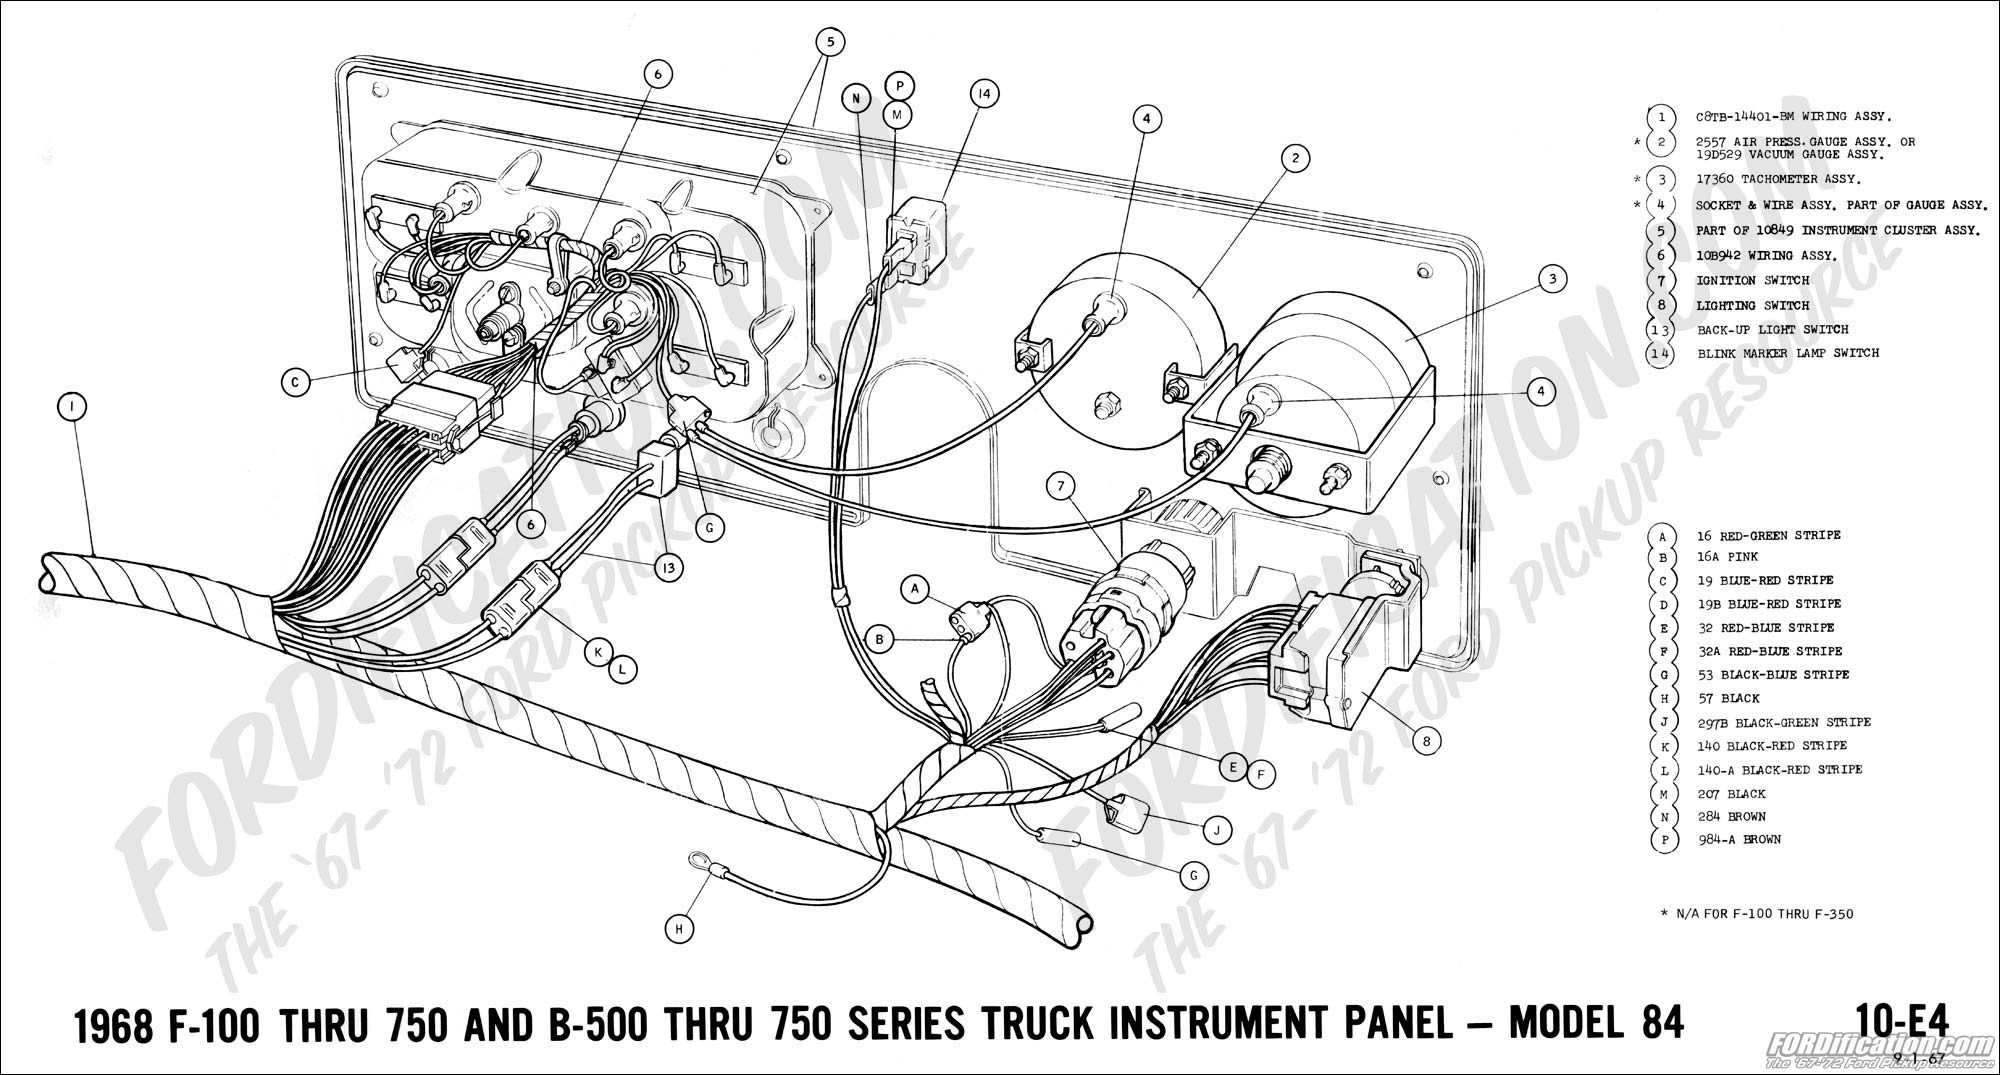 2008 f150 gauge cluster wiring diagram